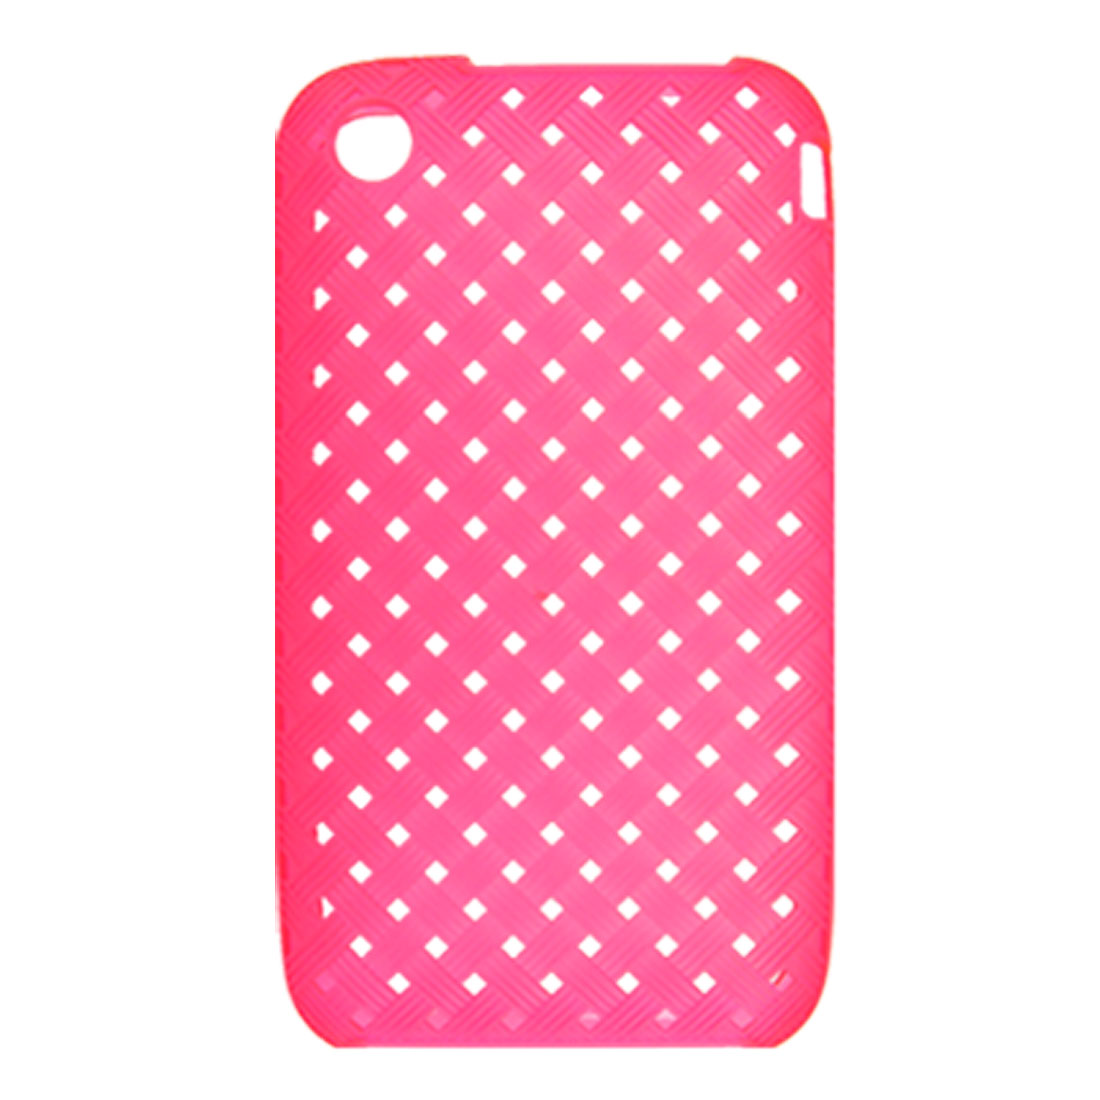 Protective Magenta Weave Design Soft Plastic Case for iPhone 3G 3GS